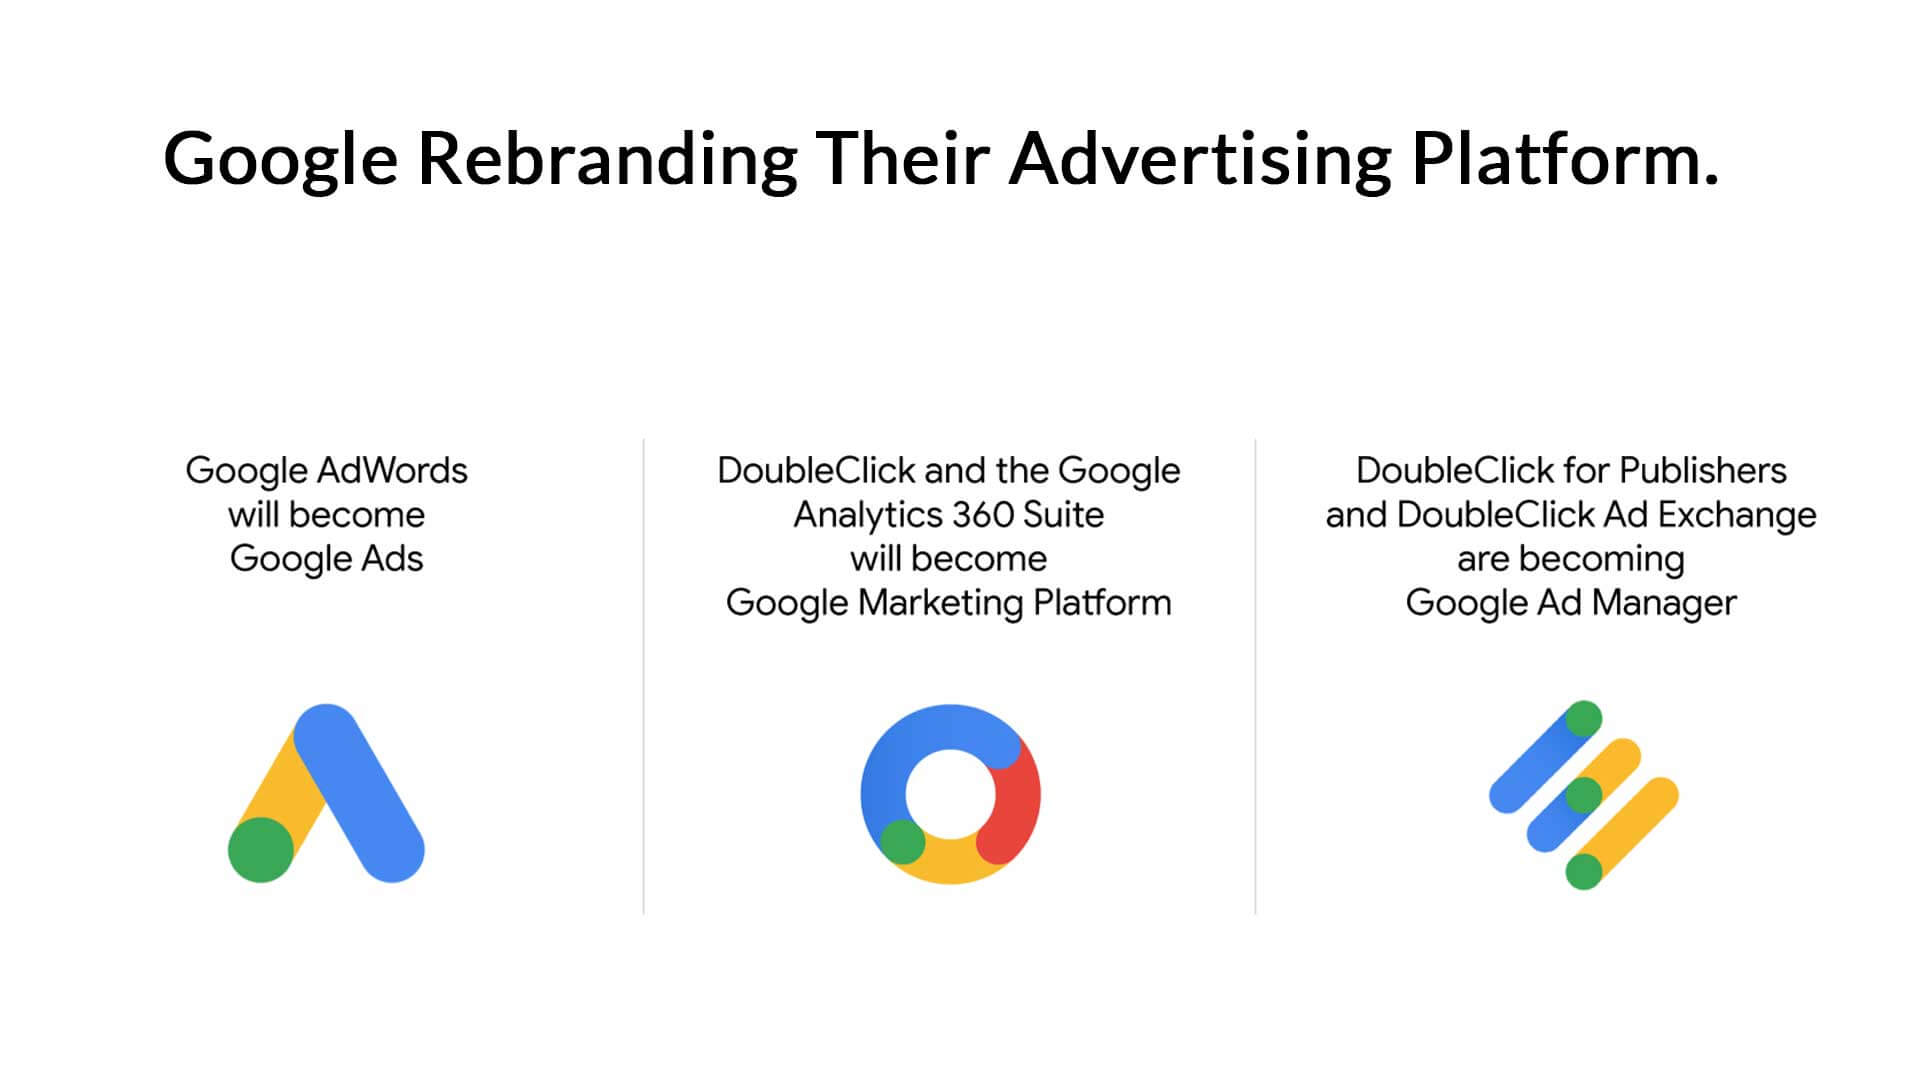 Google Rebrand their Google AdWords and DoubleClick Platform.